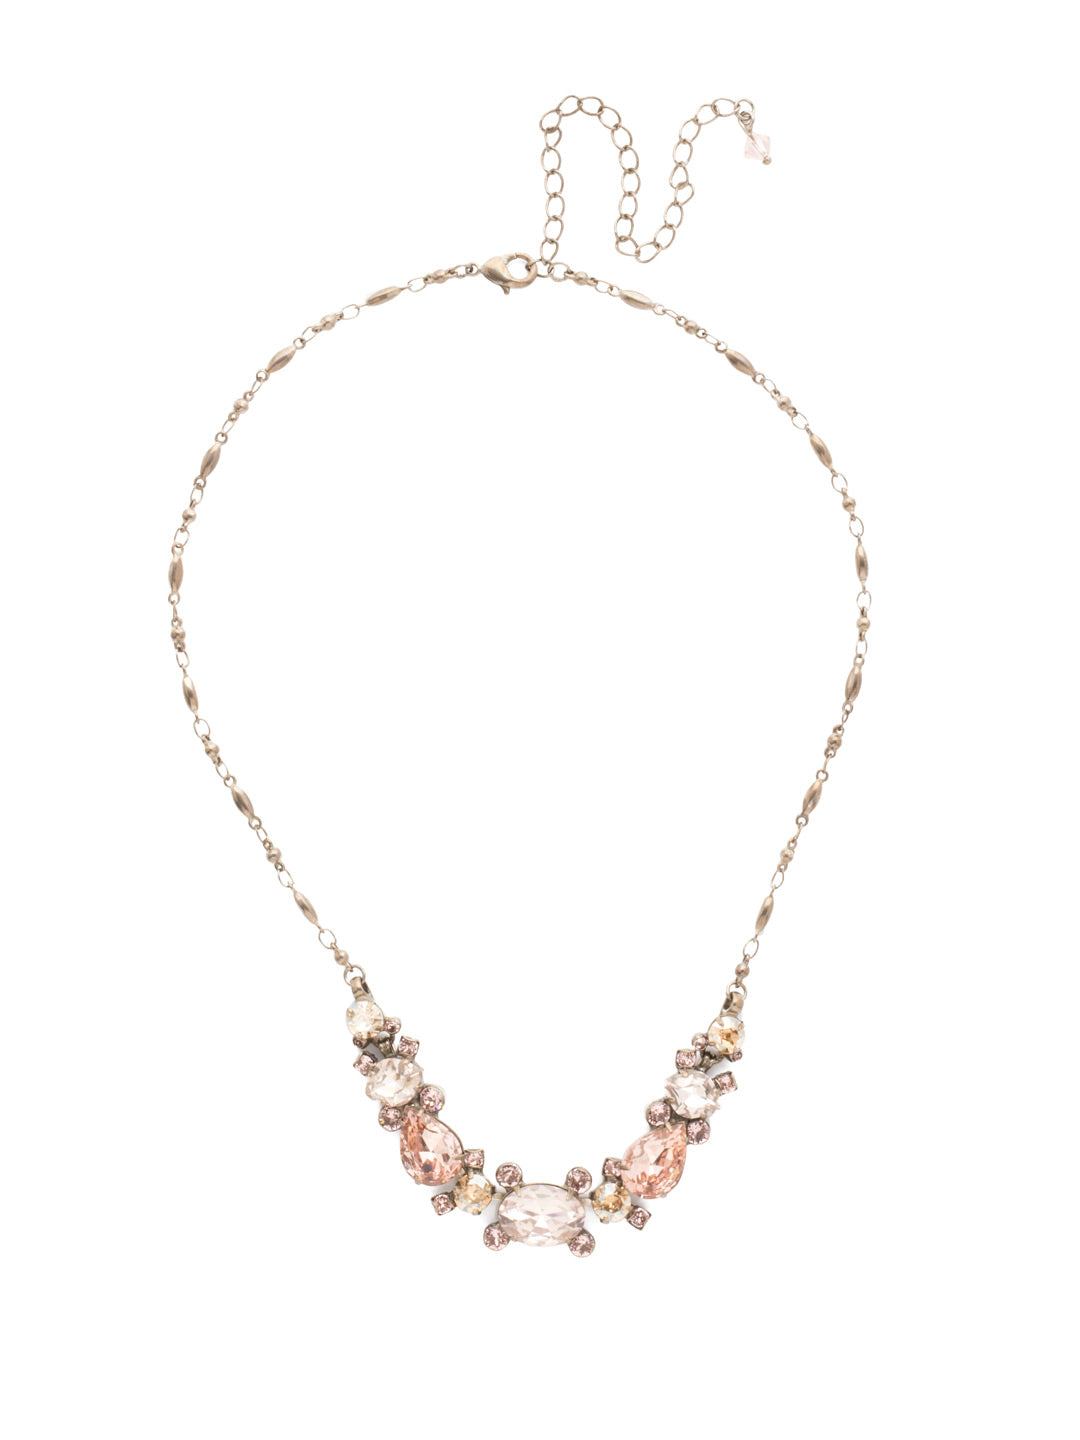 Laurel Statement Necklace - NDS49ASSBL